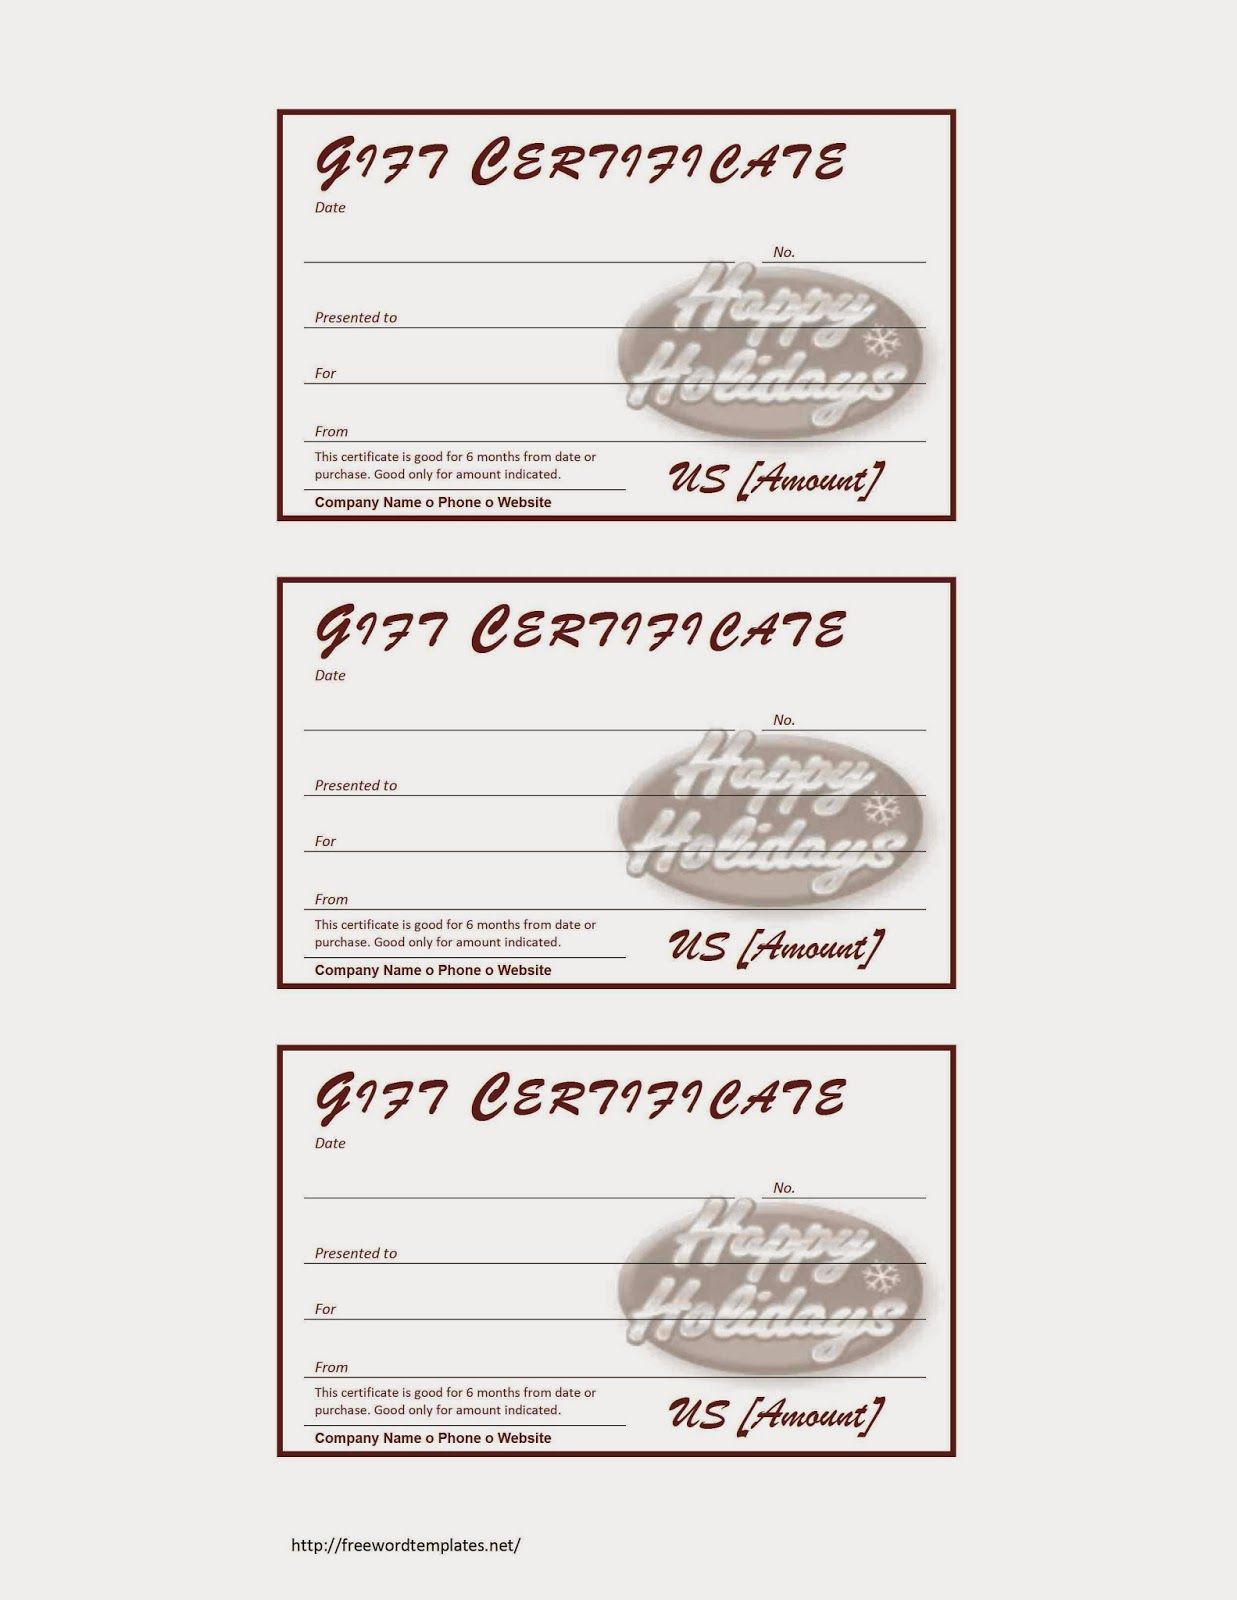 Christmas Certificates Templates For Word Interesting Holiday Gift Certificate  Books Worth Reading  Pinterest